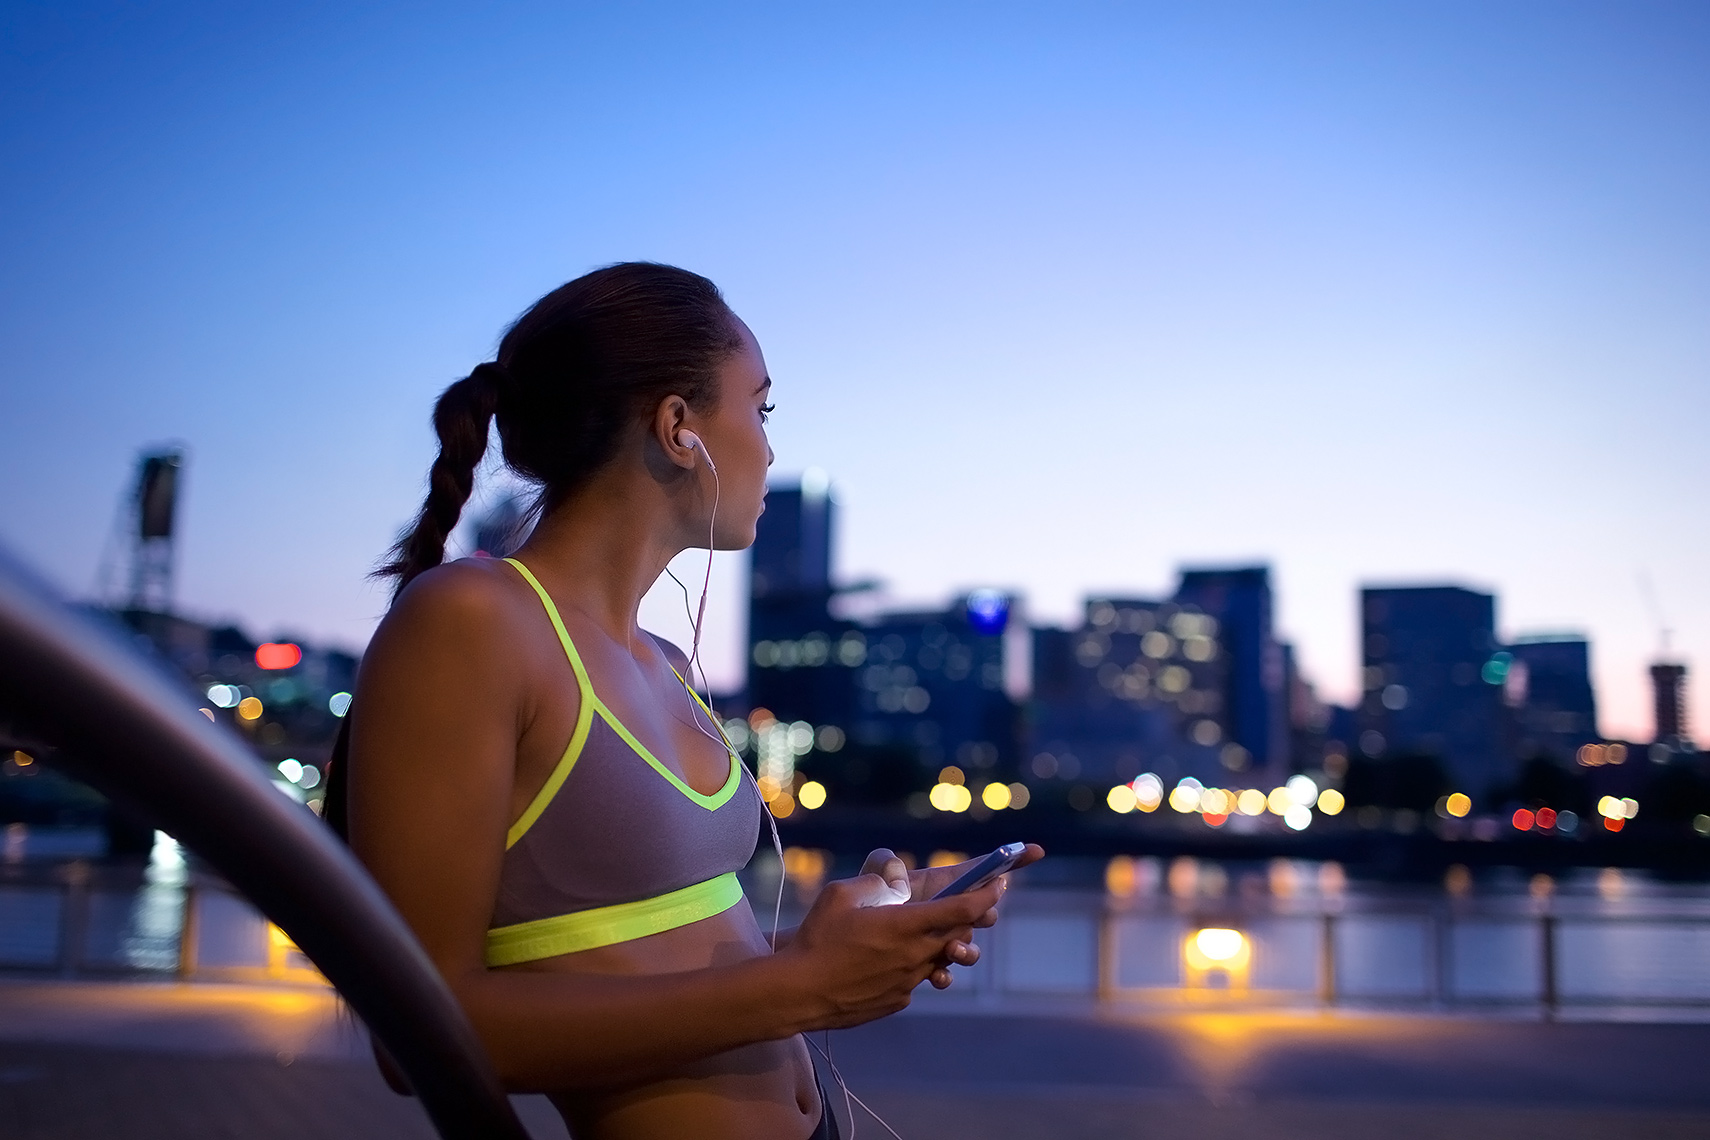 Robert-Holland_MG_9670_young woman with evening city skyline, texting after a run